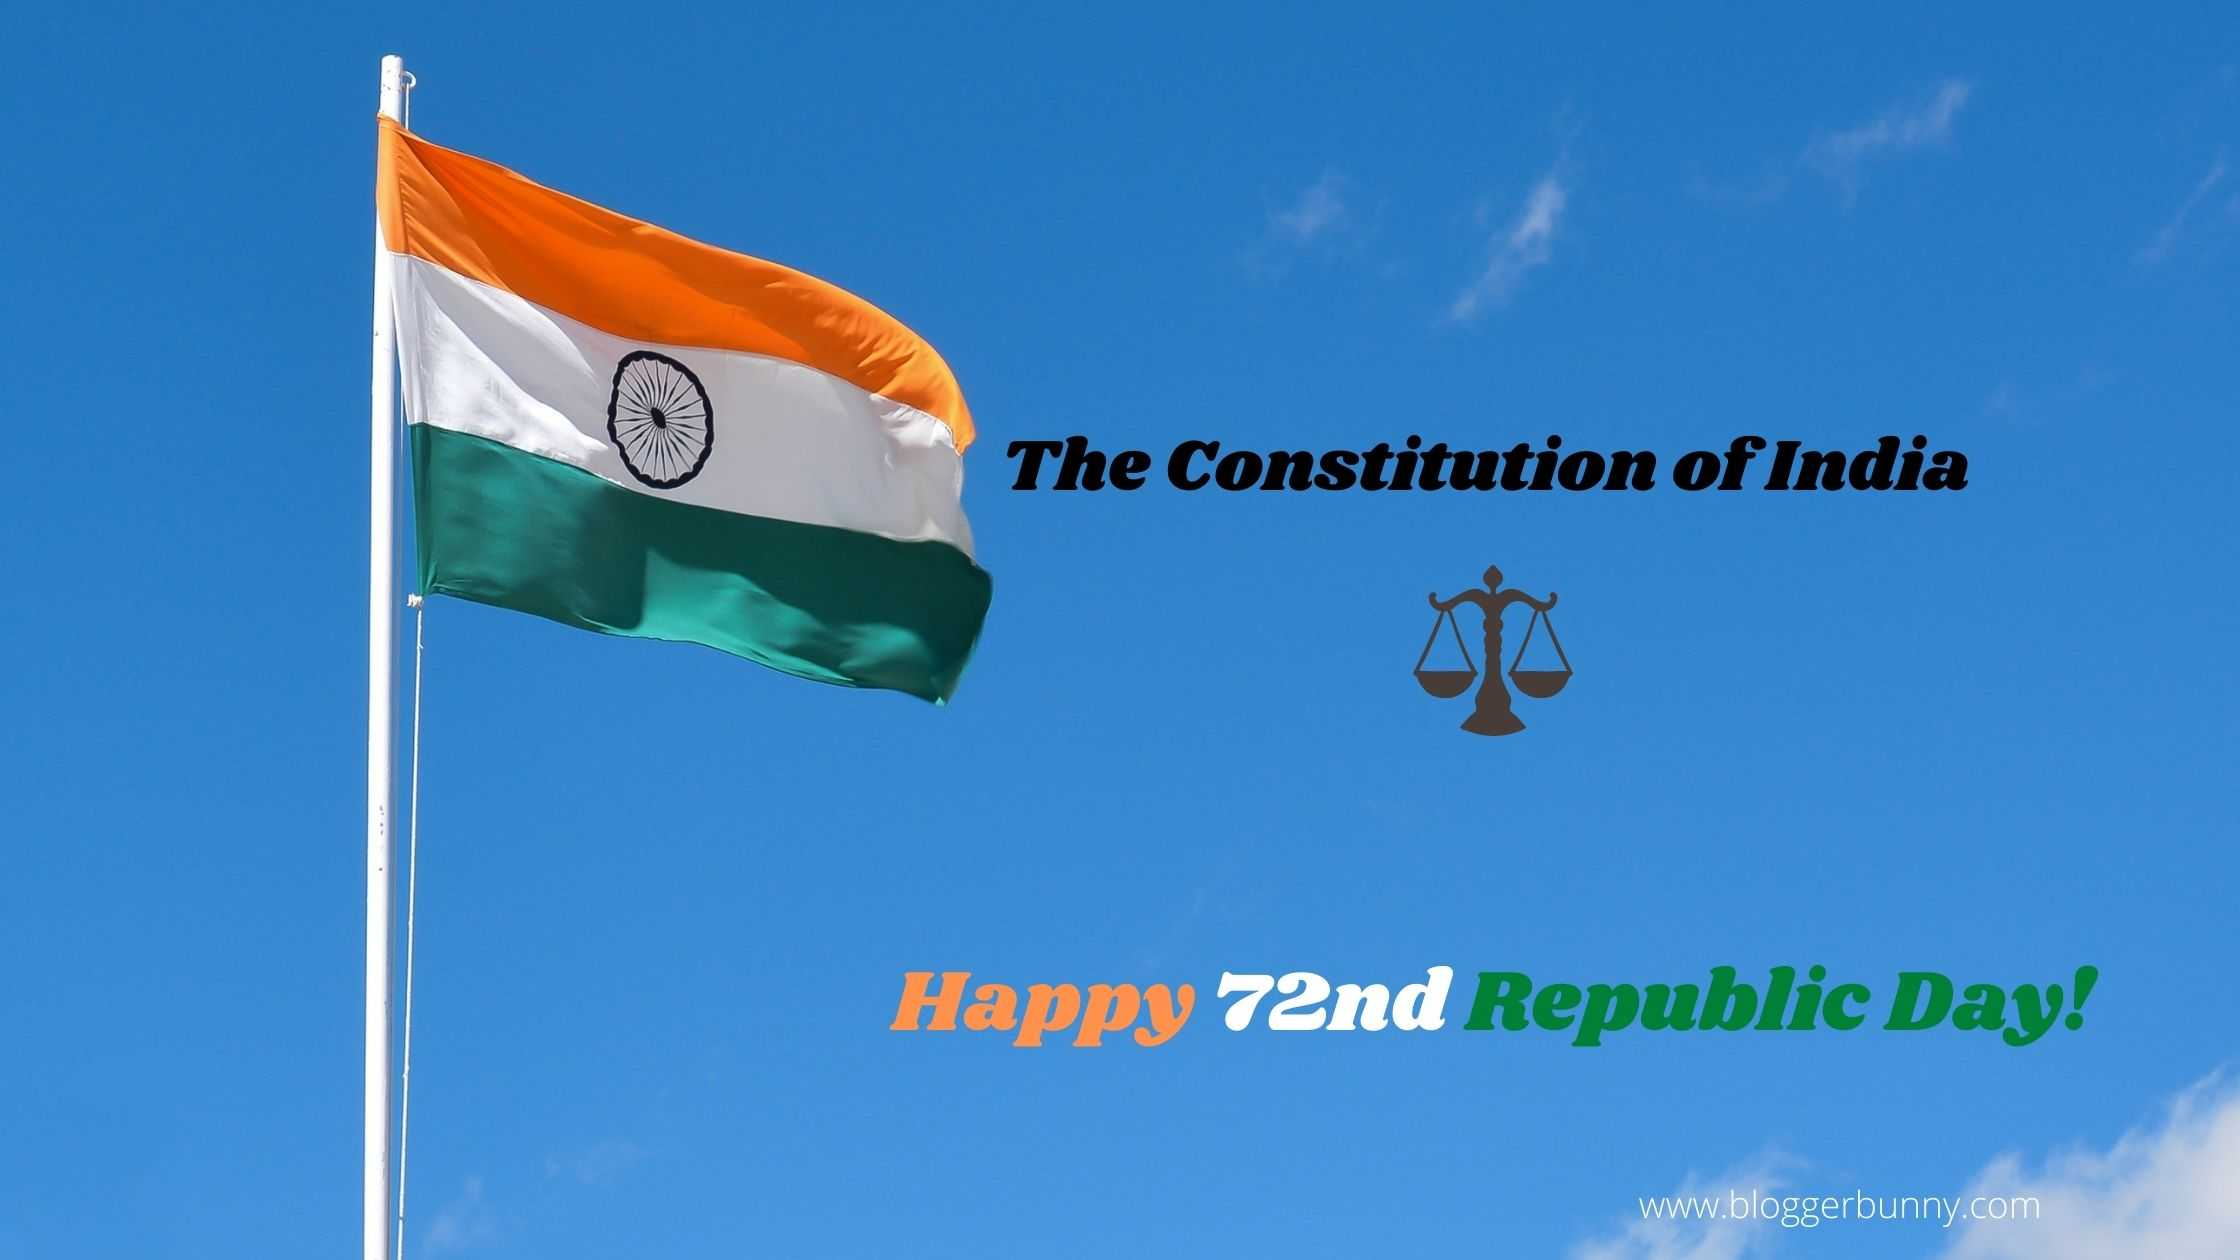 The Constitution of India – Happy 72nd Republic Day!